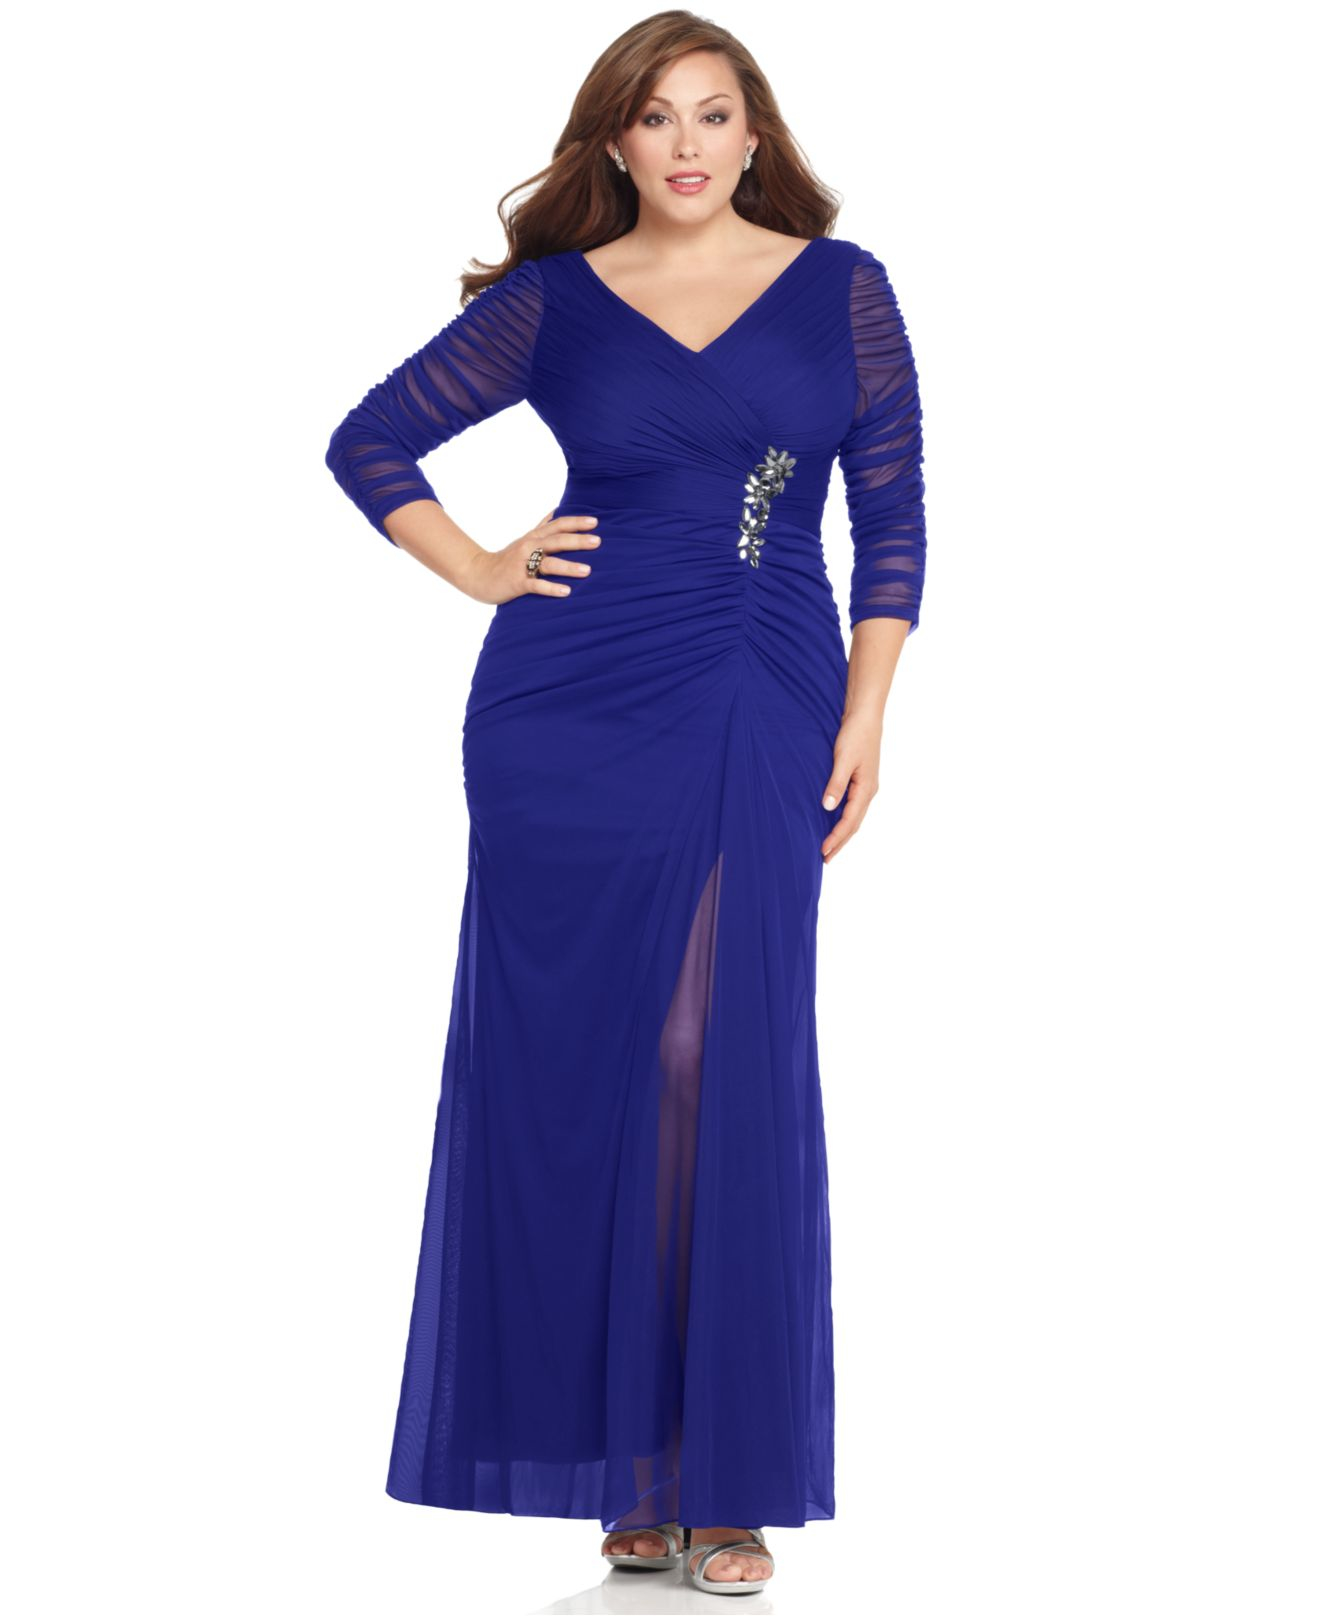 Macy S Special Occasion Dresses - Dress Prom Ideas